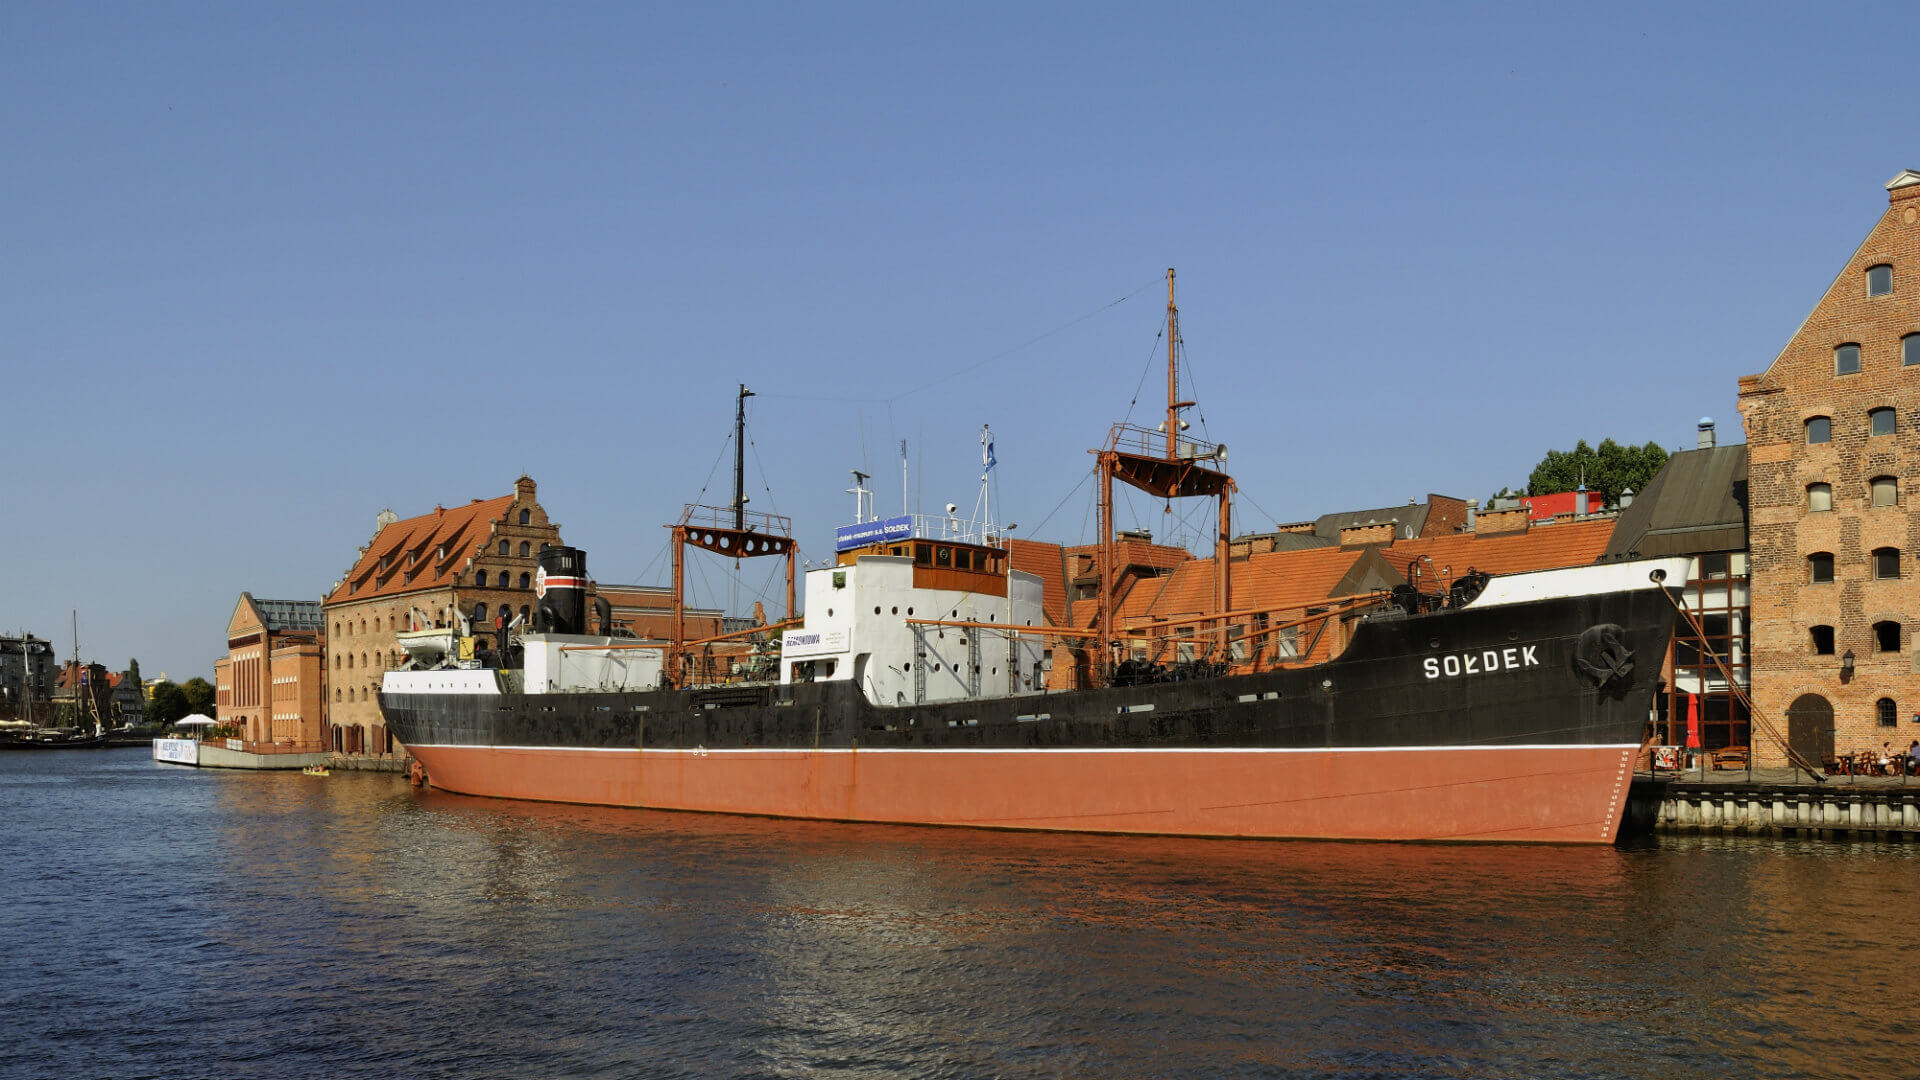 The SS Sołdek in Gdańsk once an ore and coal freighter, the first seaworthy ship built in Poland.